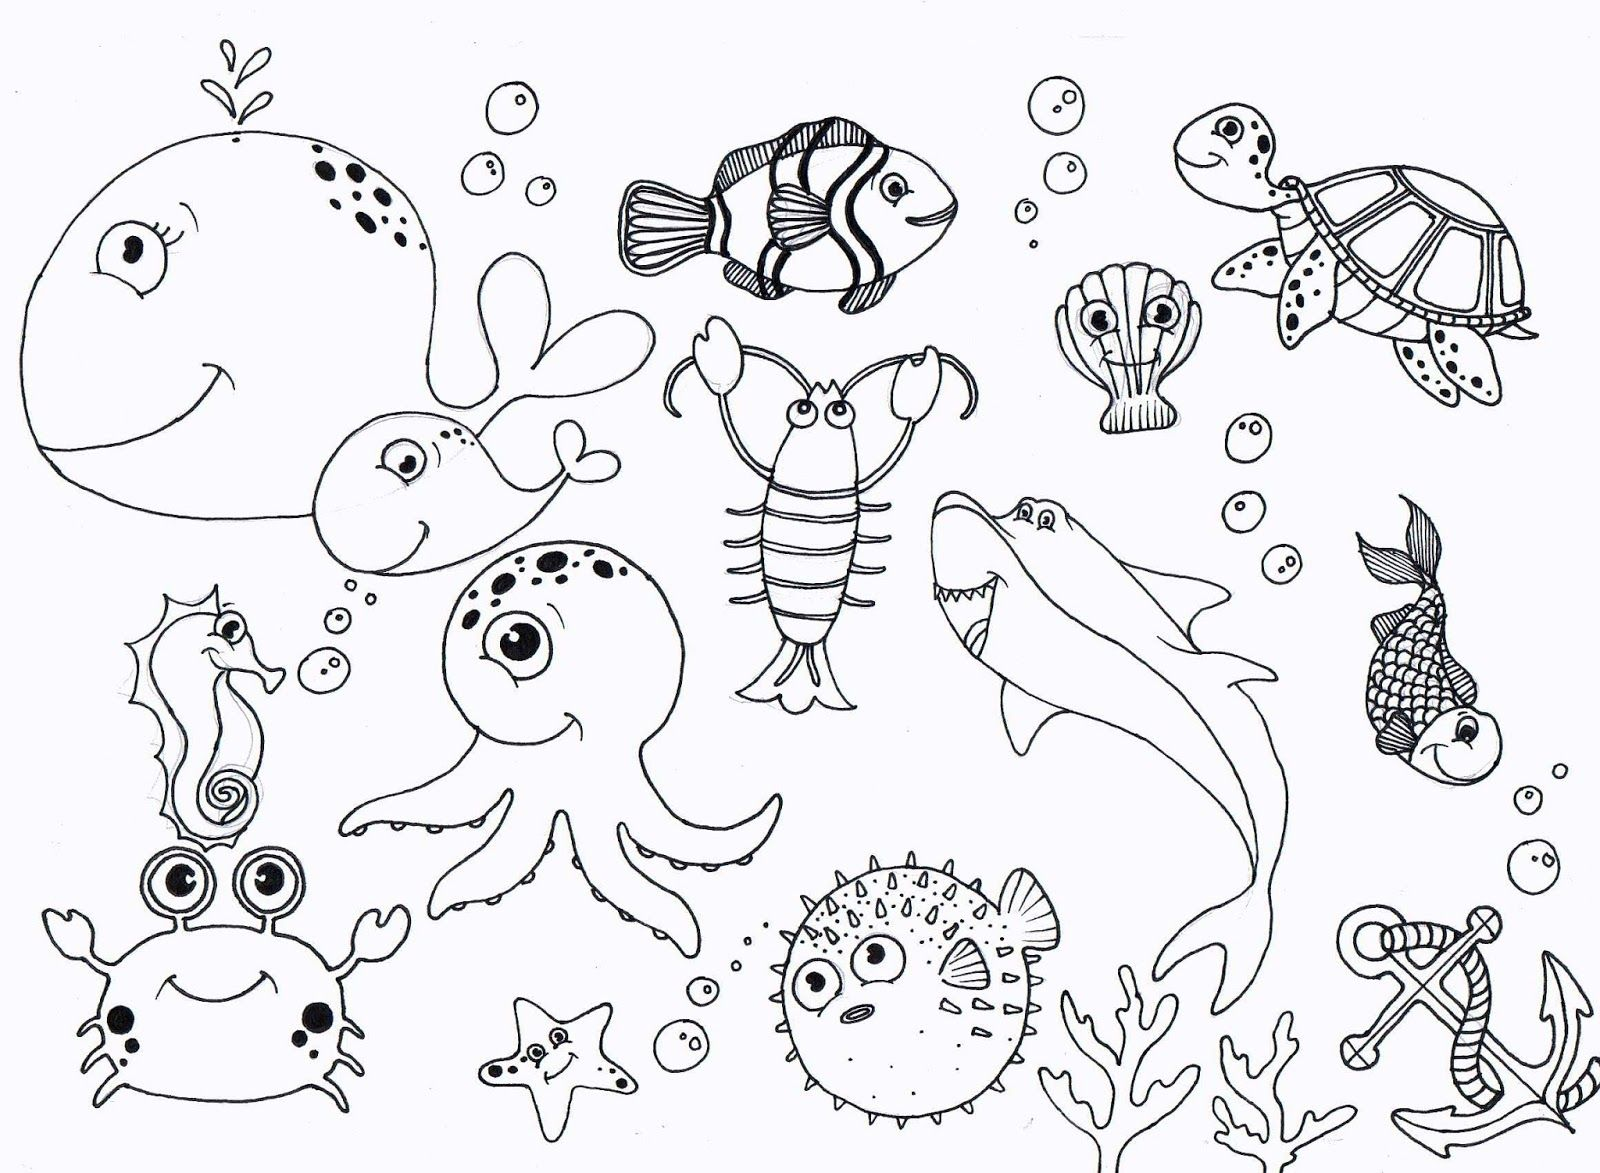 Coloring Pages Under The Sea Ocean Themed Ocean Coloring Pages Animal Coloring Pages Under The Sea Drawings